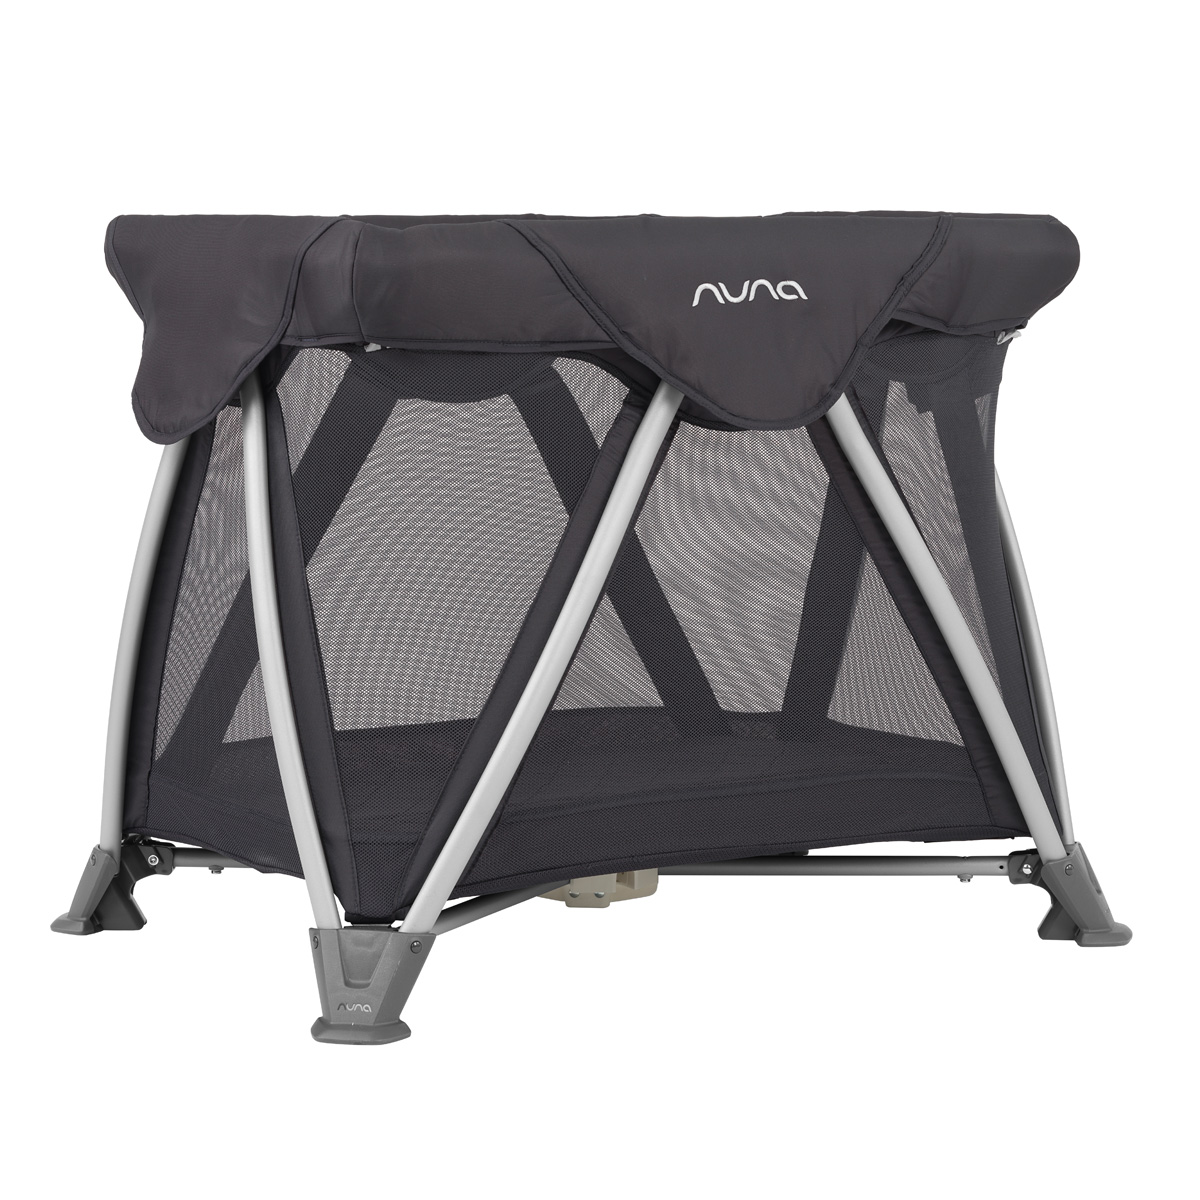 Nuna Sena Aire Mini Travel Crib in Iron